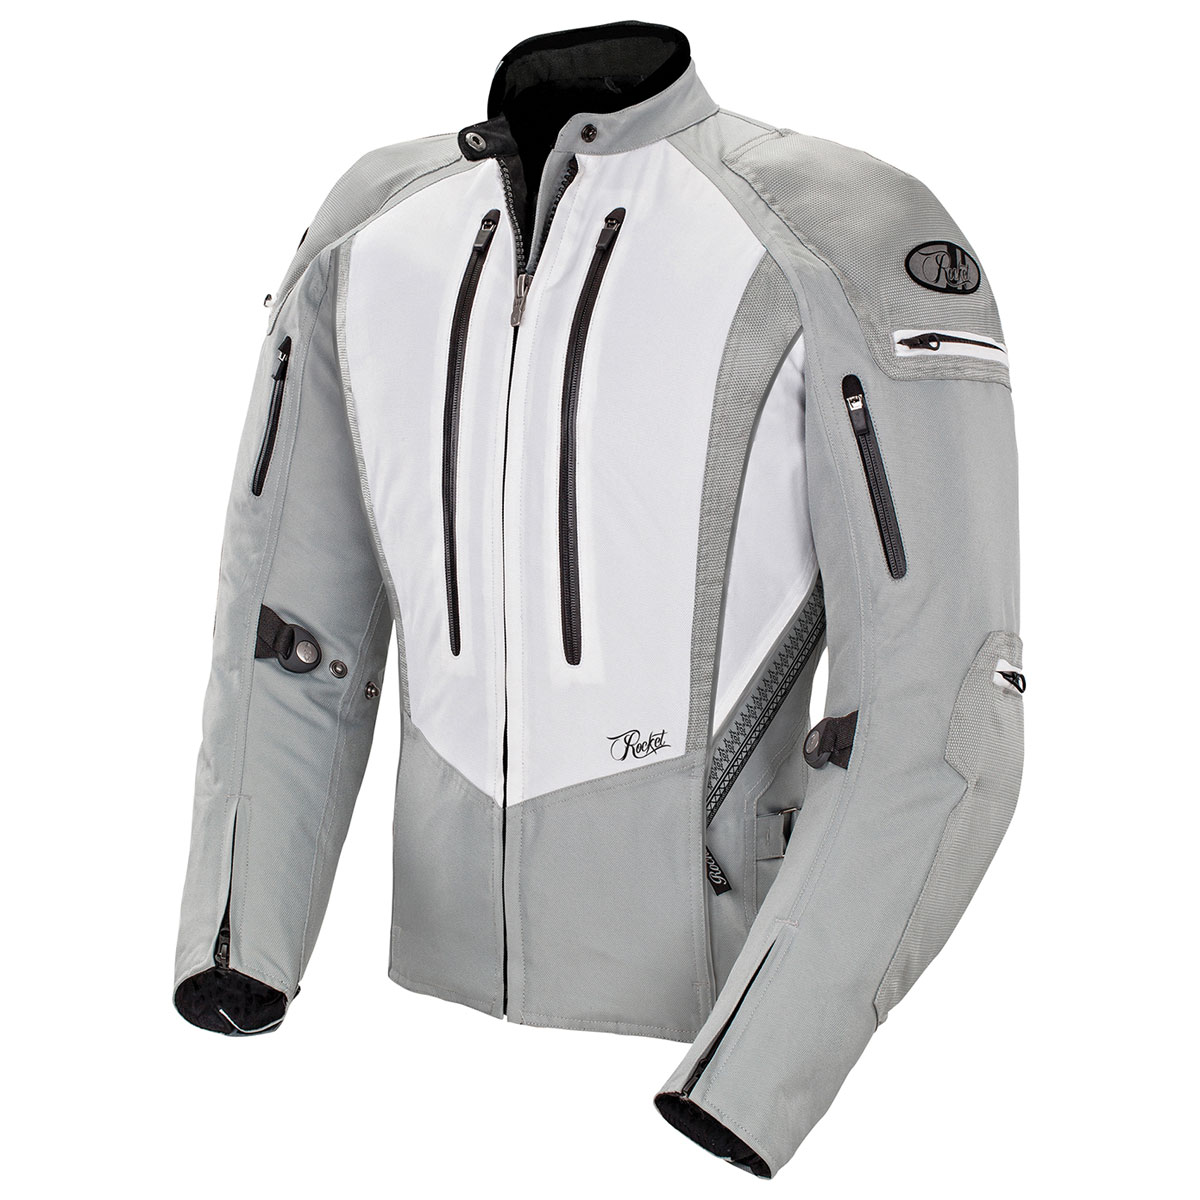 Joe Rocket Women's Atomic 5.0 White/Silver Jacket